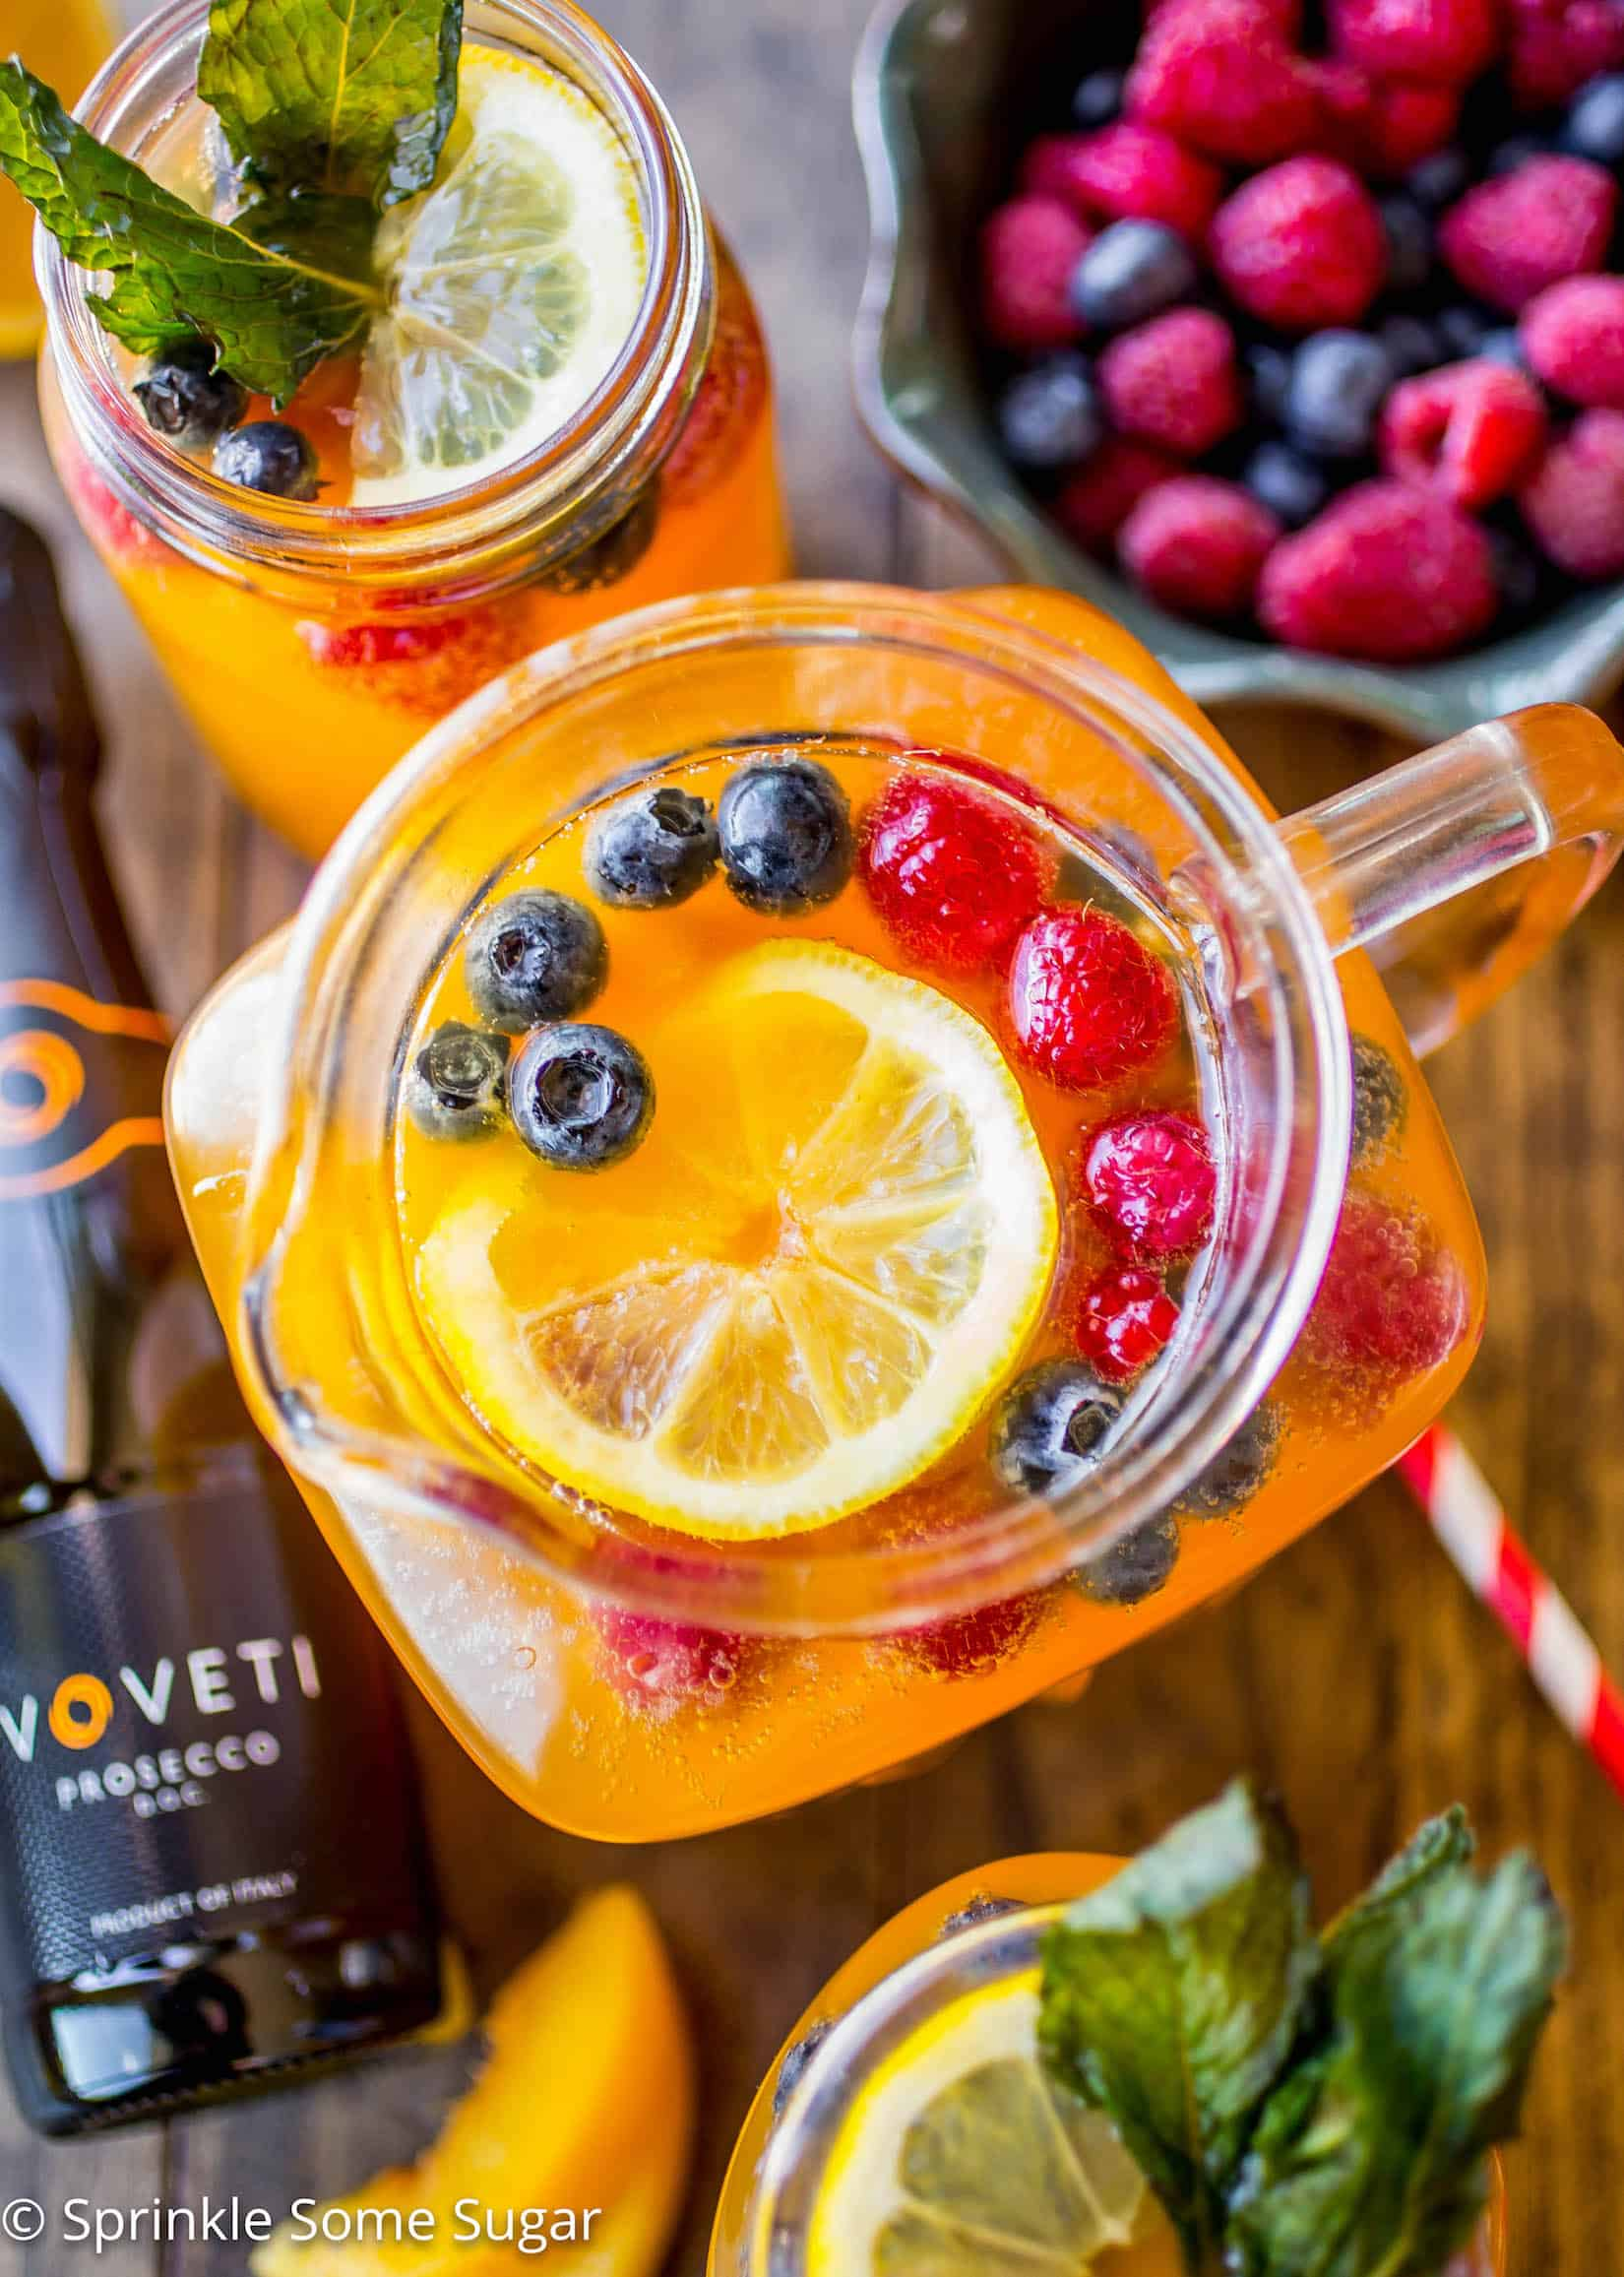 Lemon Peach Prosecco Punch - A crisp and refreshing lemon peach prosecco punch!